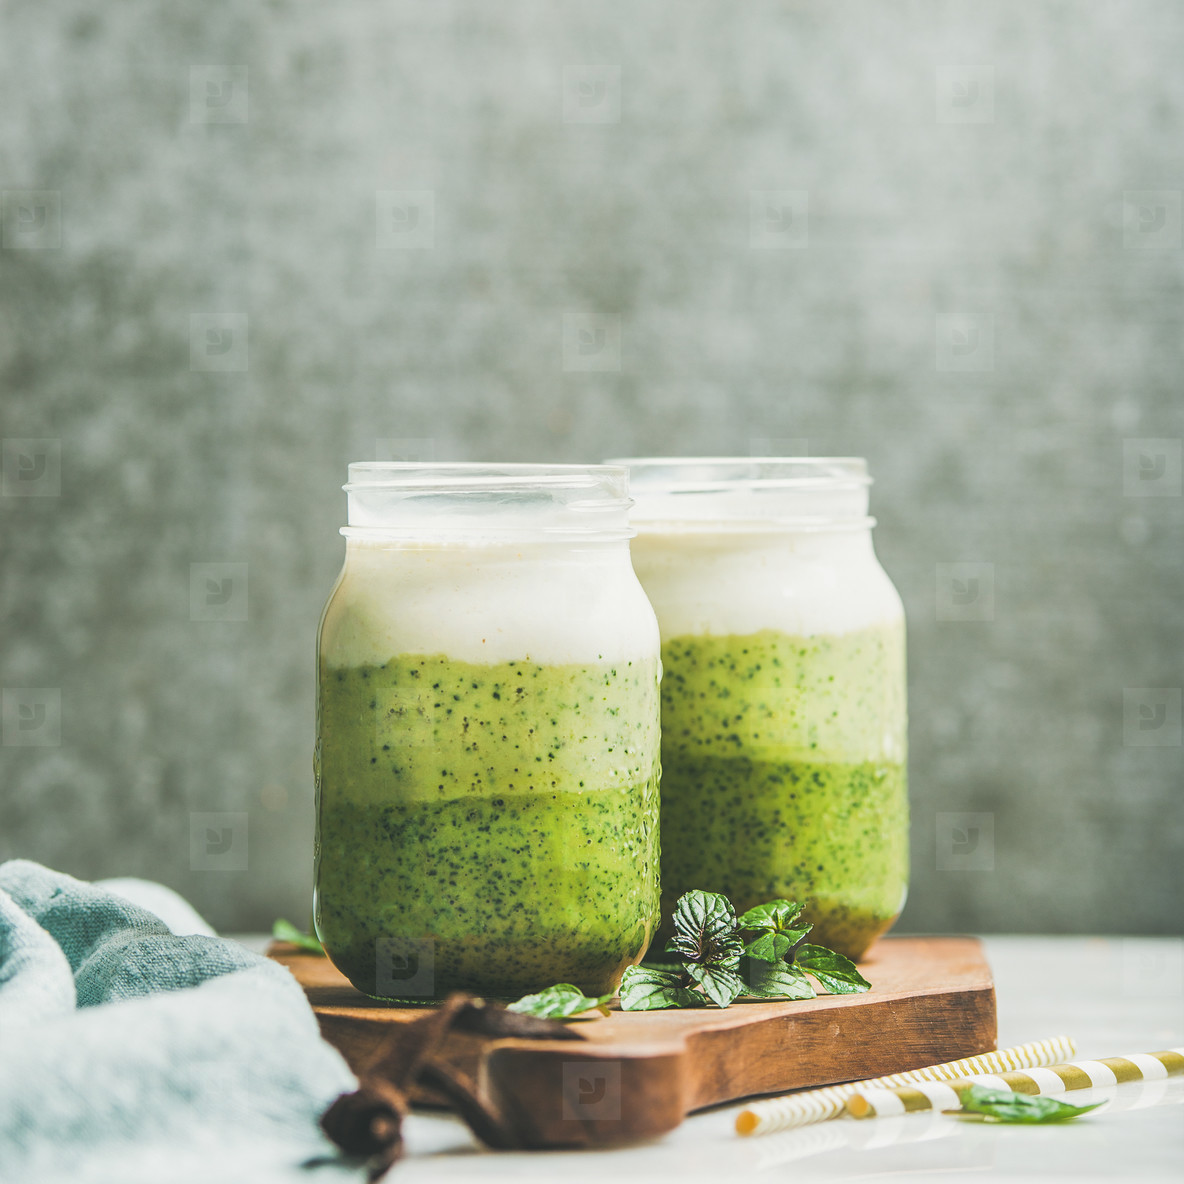 Ombre layered green smoothies with mint leaves in glass jars